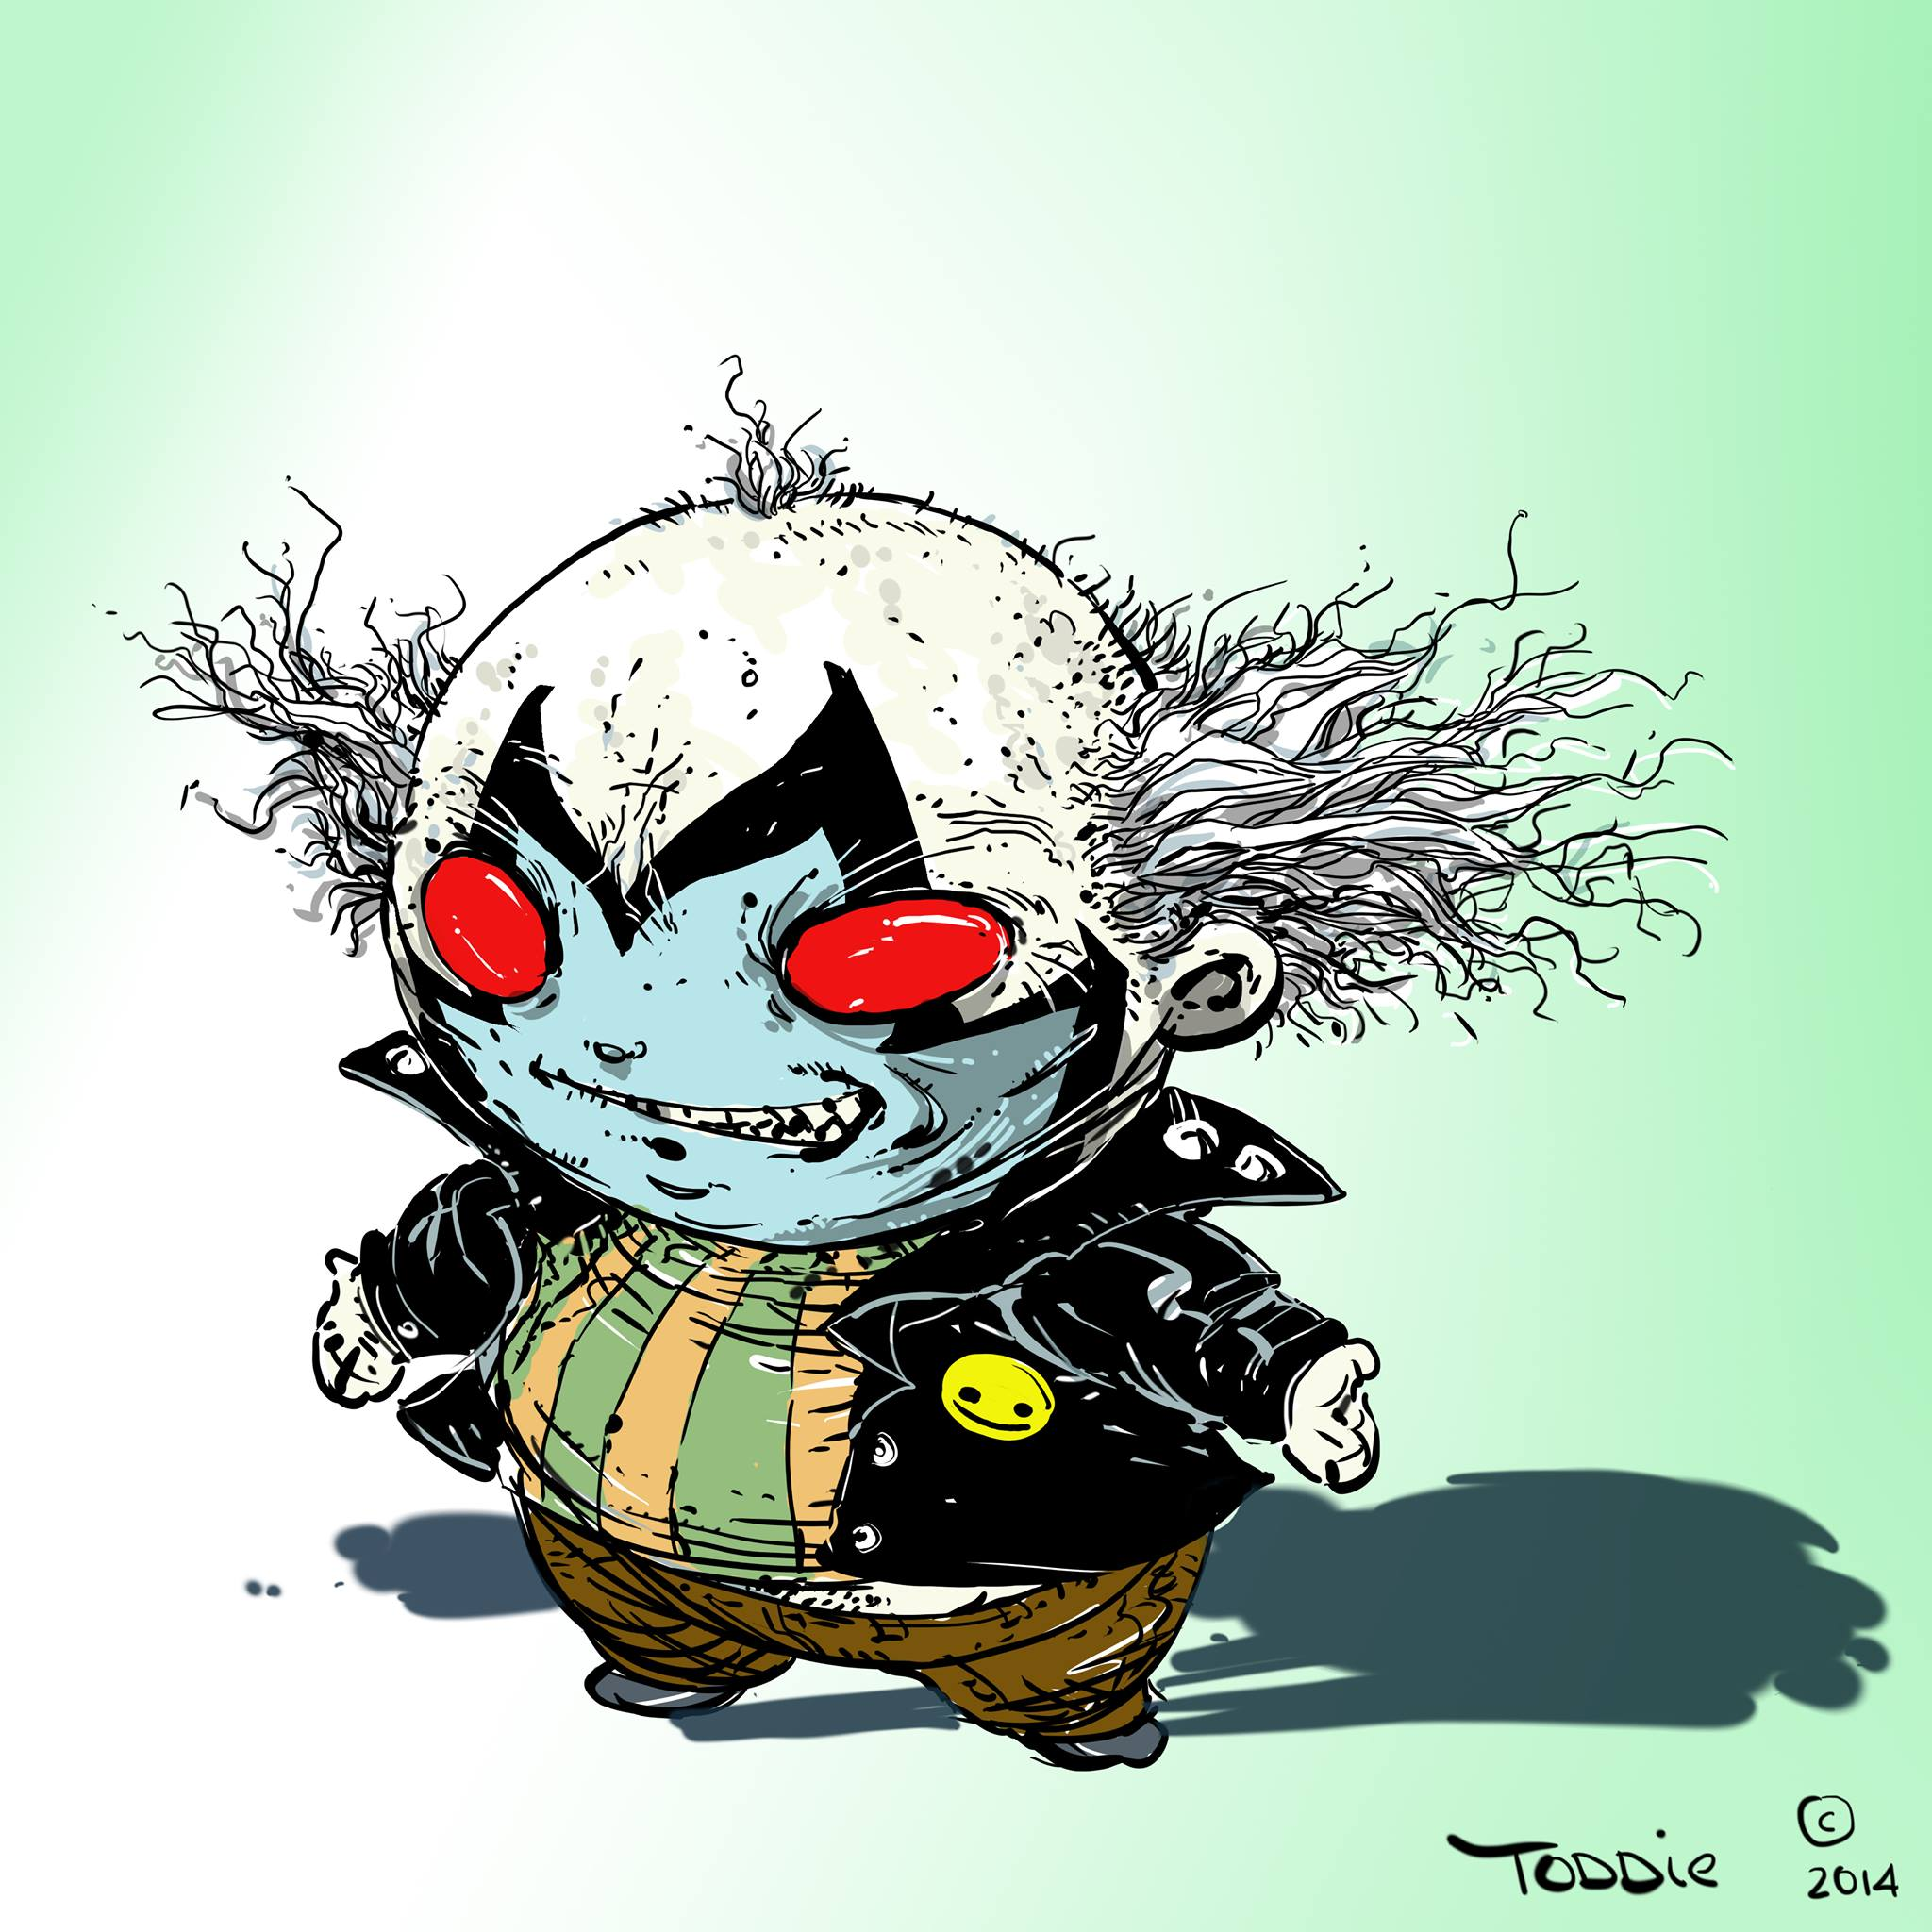 2048x2048 What Would Todd Mcfarlane's Spawn Look Like If Skottie Young Had